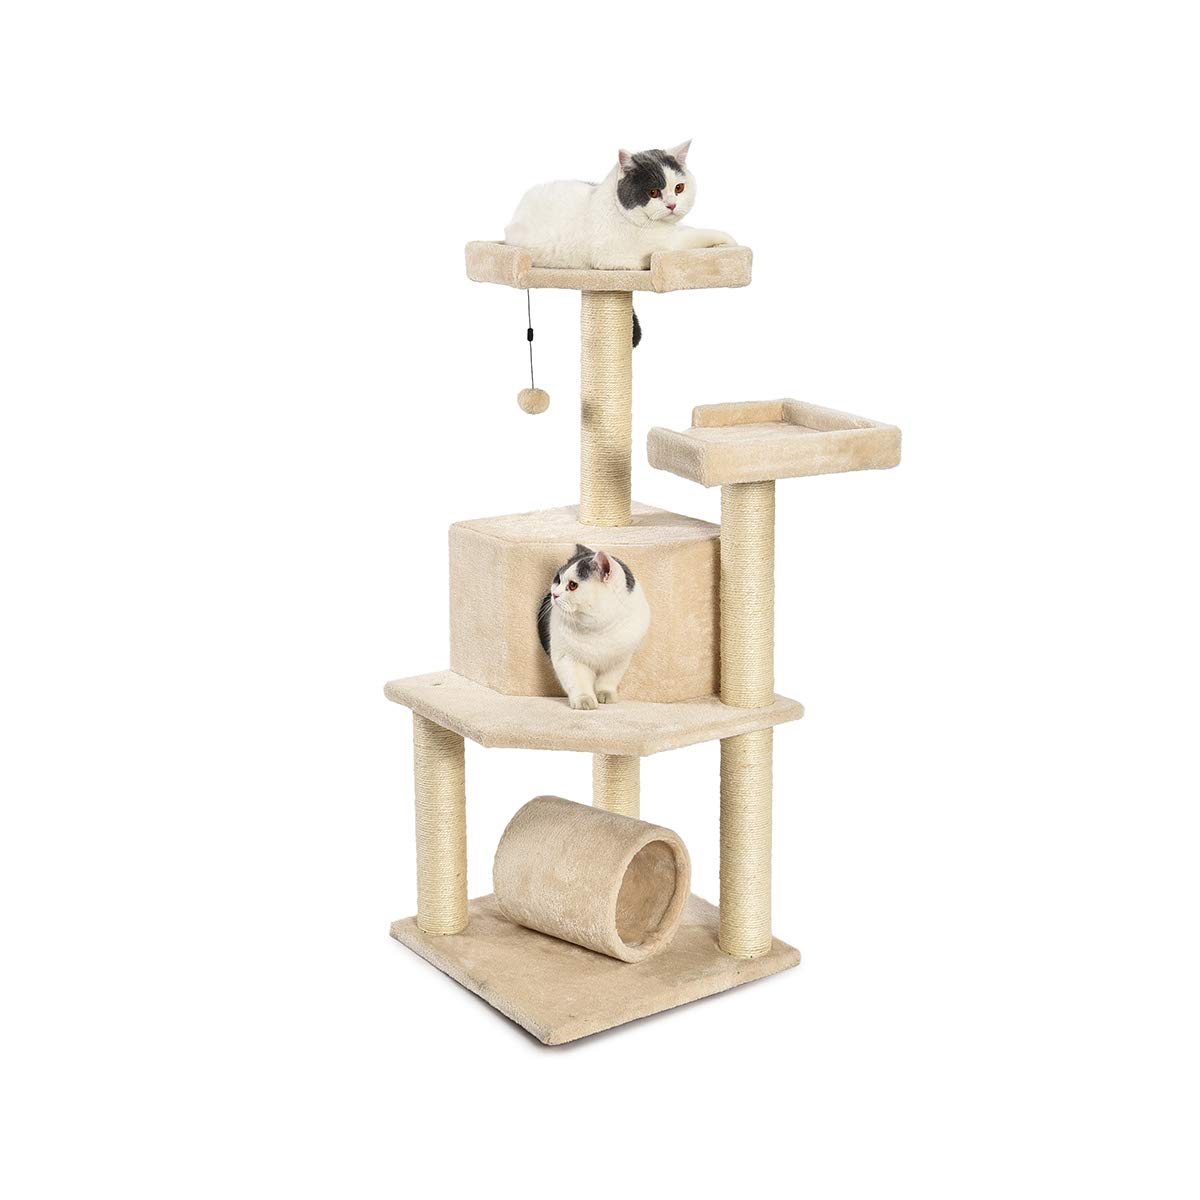 AmazonBasics Cat Tree Tower with Tunnel And Scratching Post - 19 x 19 x 43 Inches, Beige by AmazonBasics